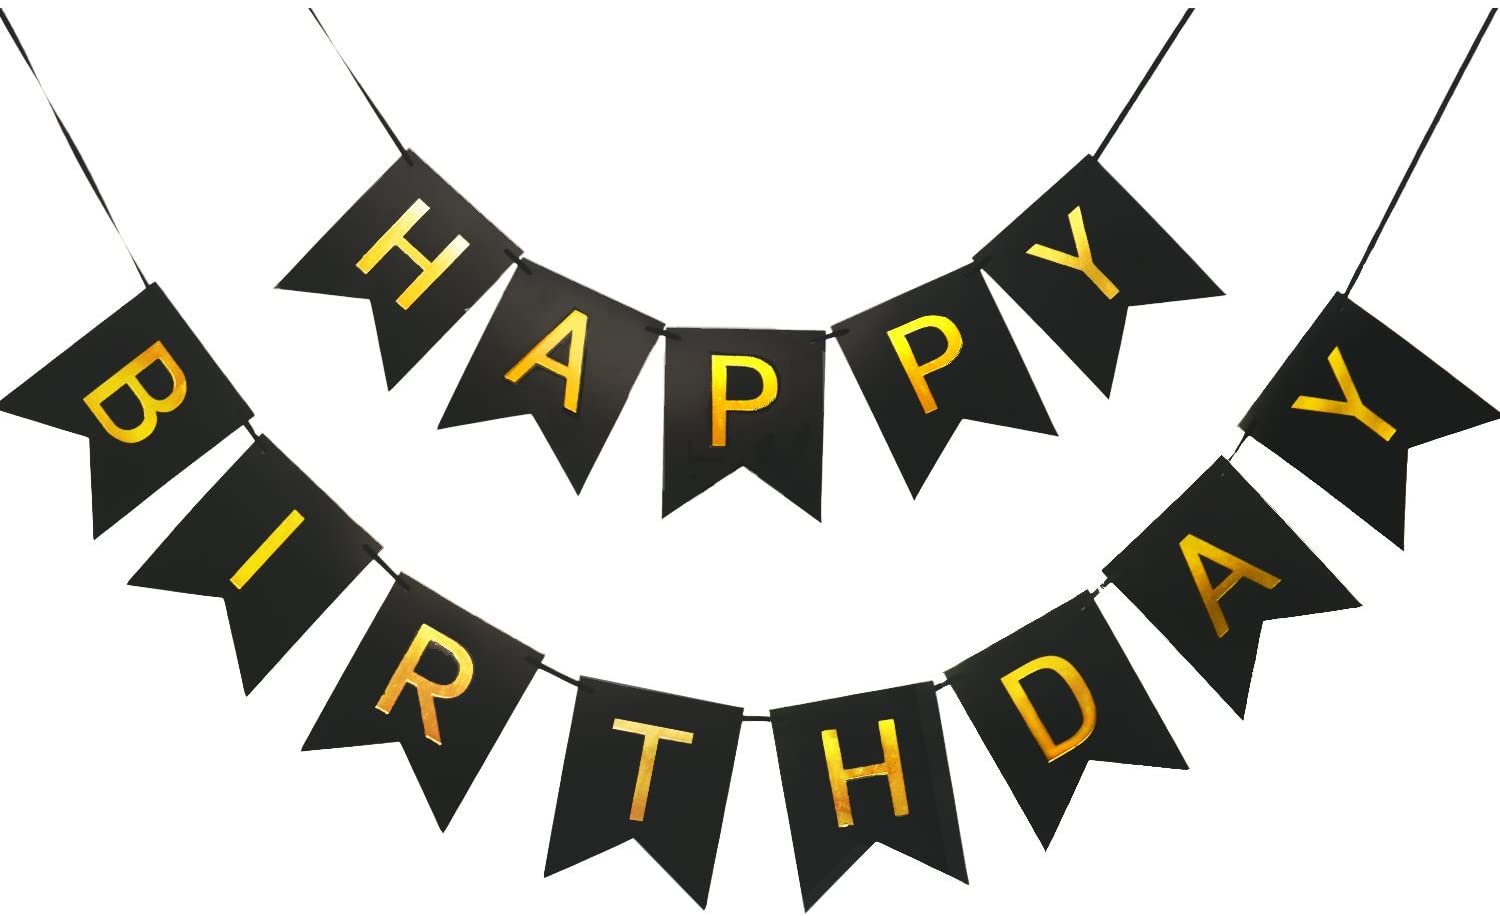 Happy birthday banner, black with shiny gold letters